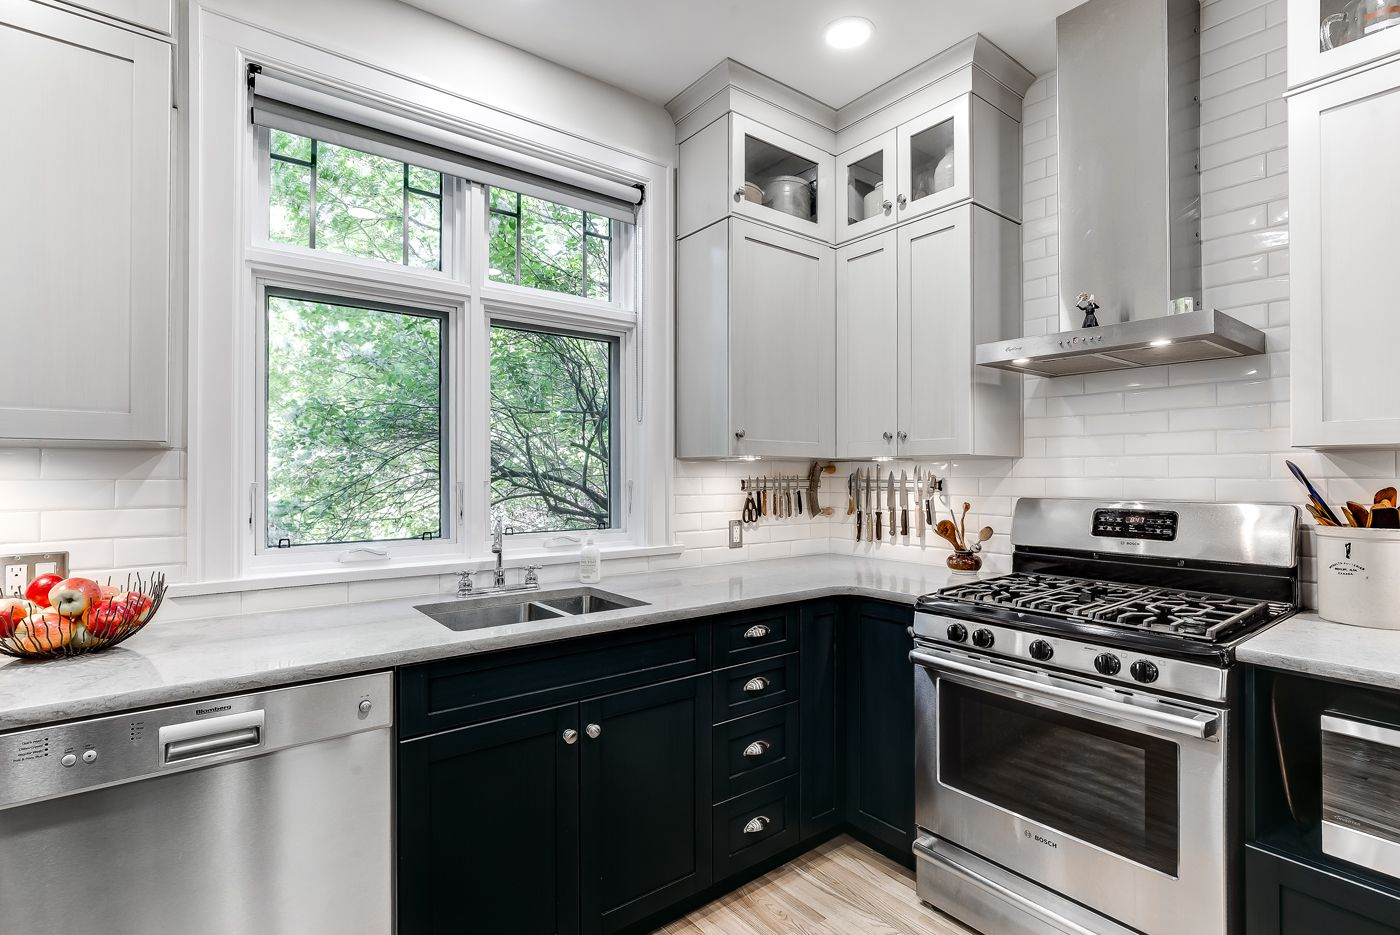 Adobe Kitchen Cabinets By Superior Cabinets For Your Kitchen Bath Laundry Or Entertainment Room Tradit Superior Cabinets Kitchen Photos Best Kitchen Designs